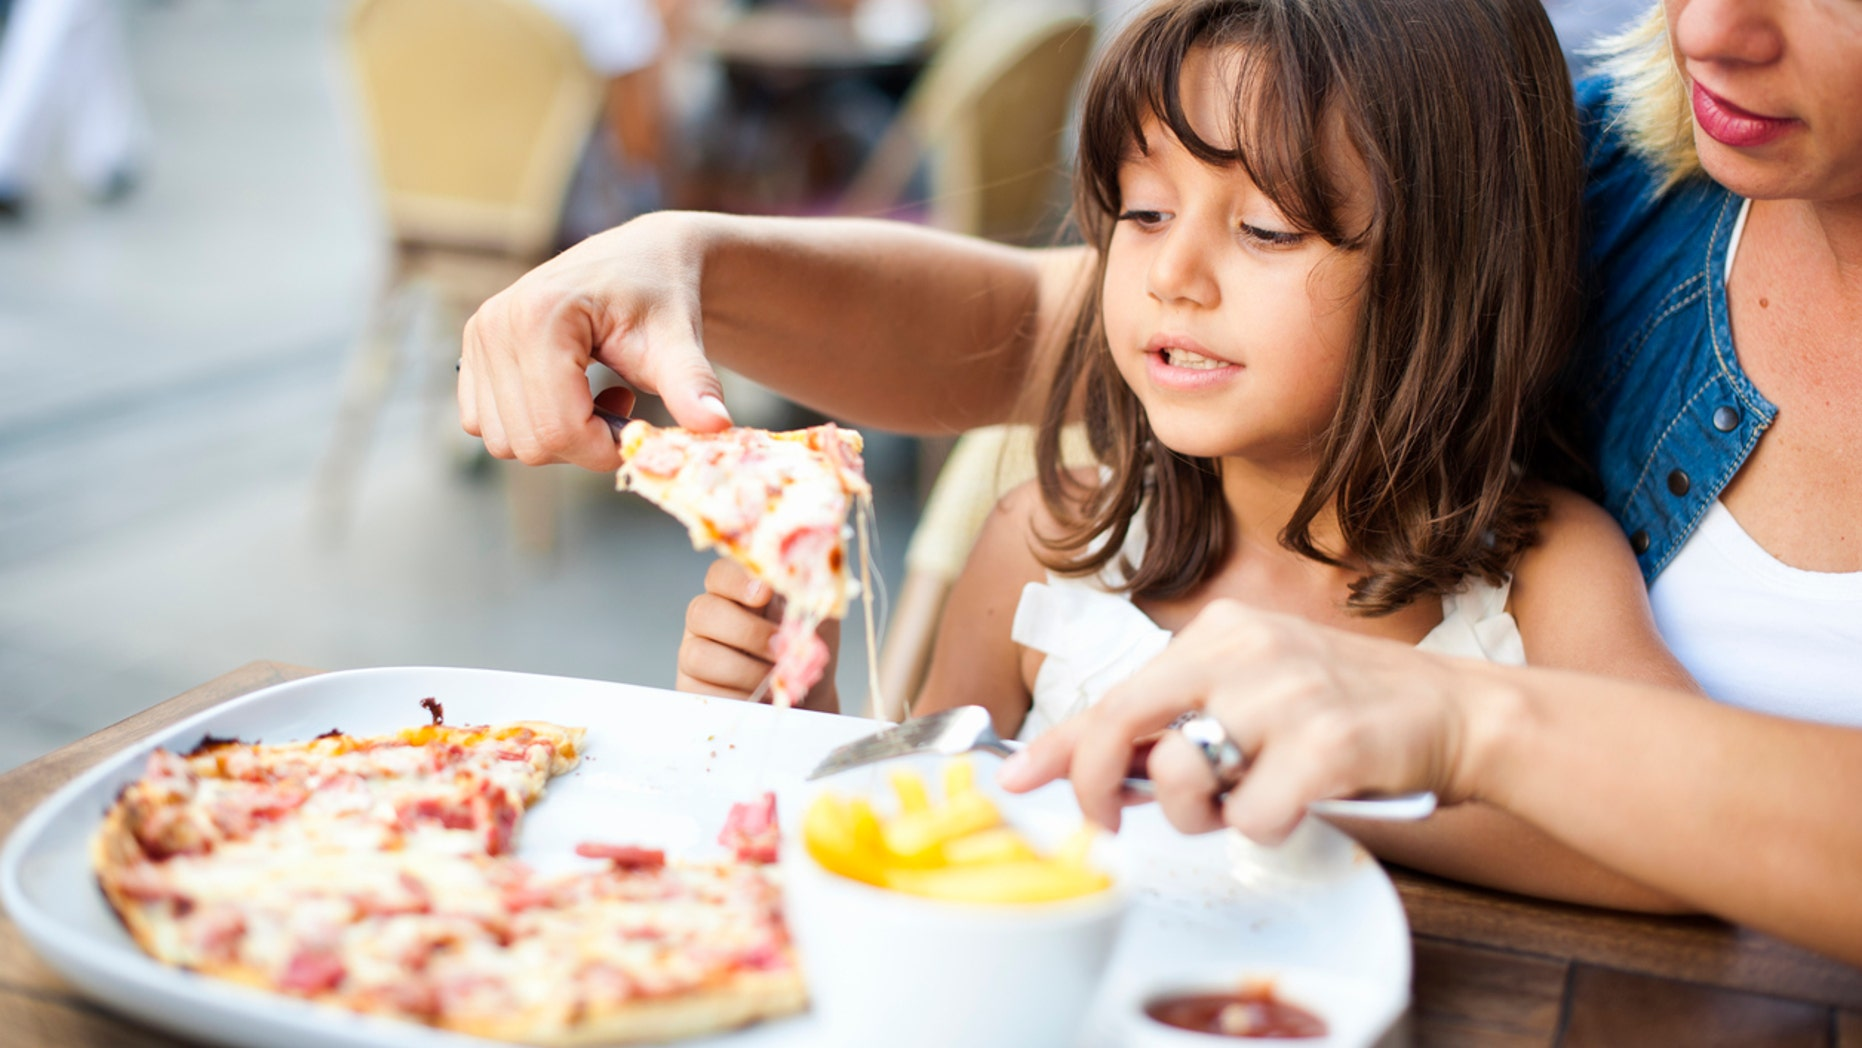 A pizza restaurant has made a polarizing decision to ban children from their restaurant after a scary event involving a child's safety.